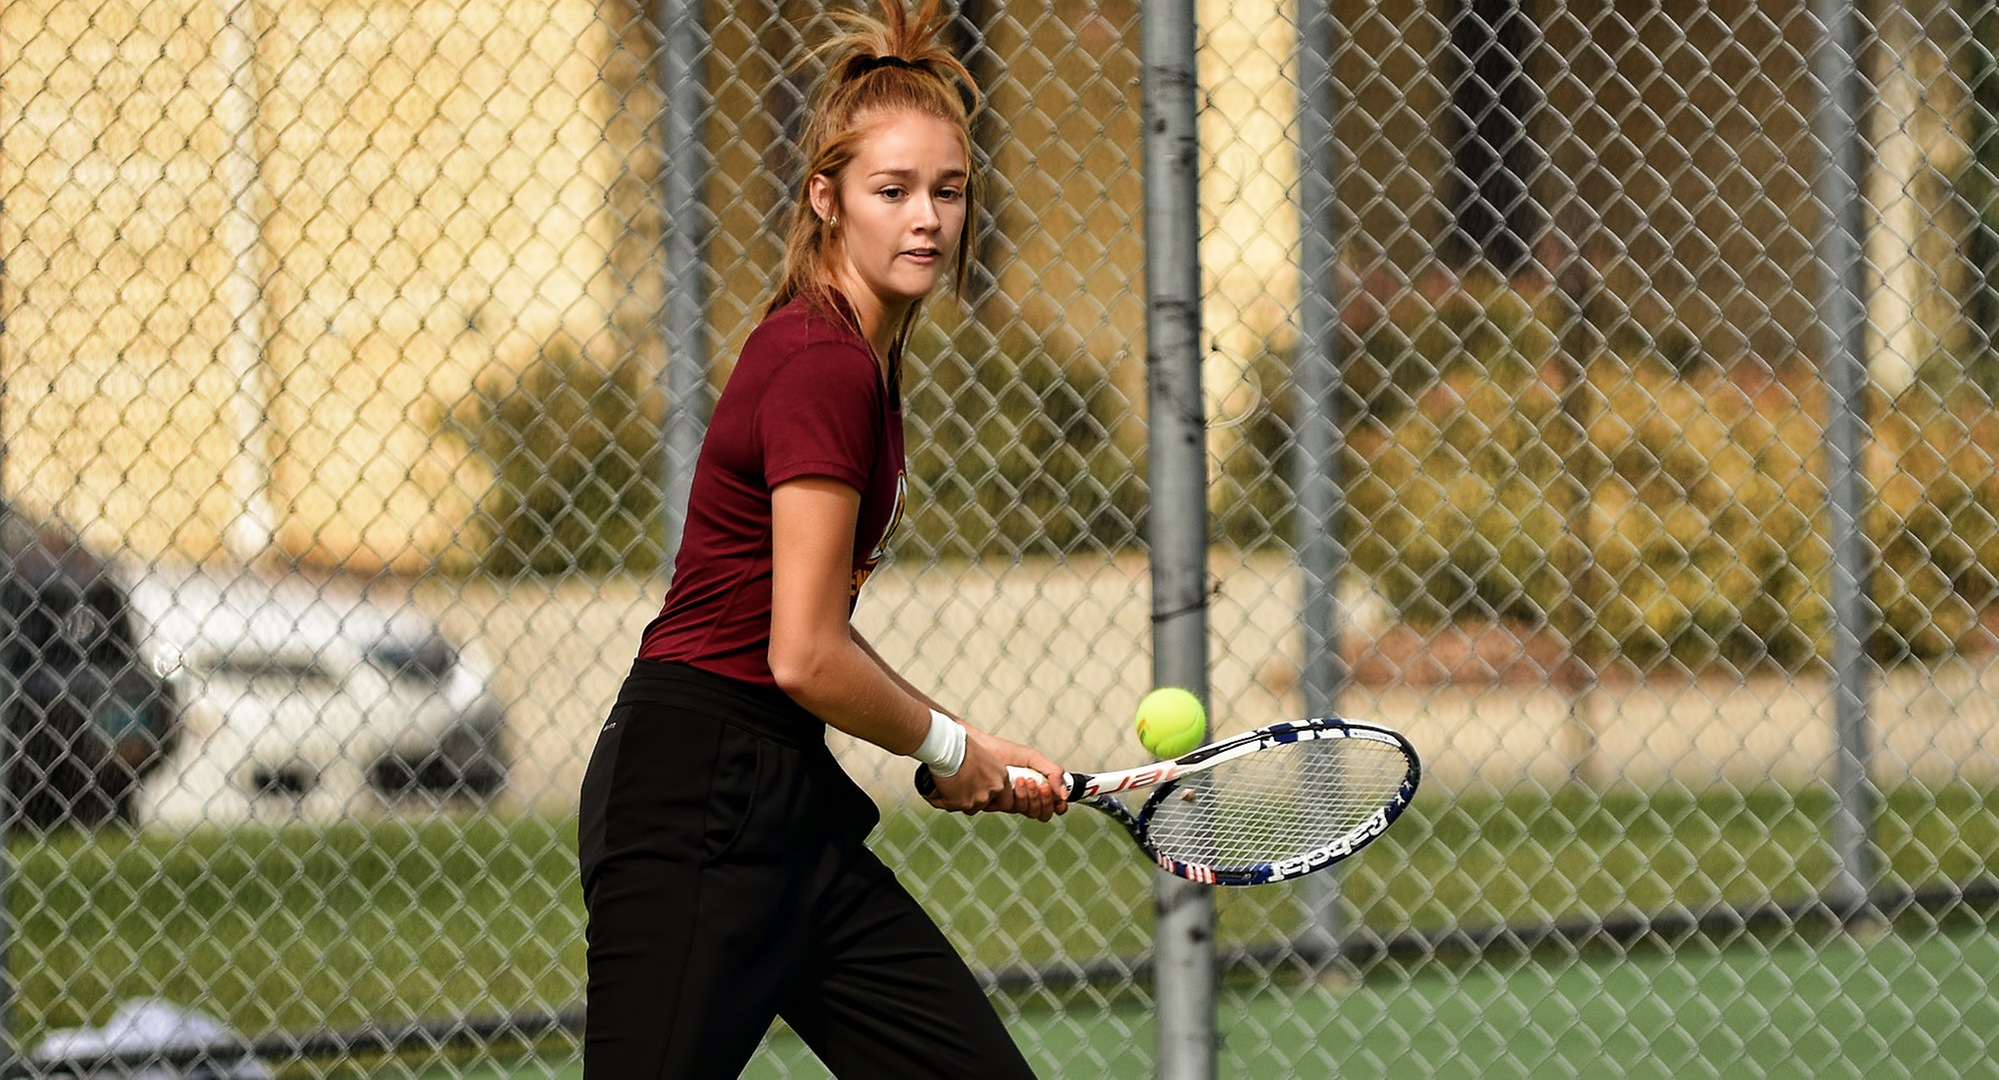 Freshman Raquel Egge fought off seven match points and earned an epic super-set tie-breaker win at No.1 singles against a 2-time All-MIAC player in the Cobbers' MIAC opener at St. Thomas.